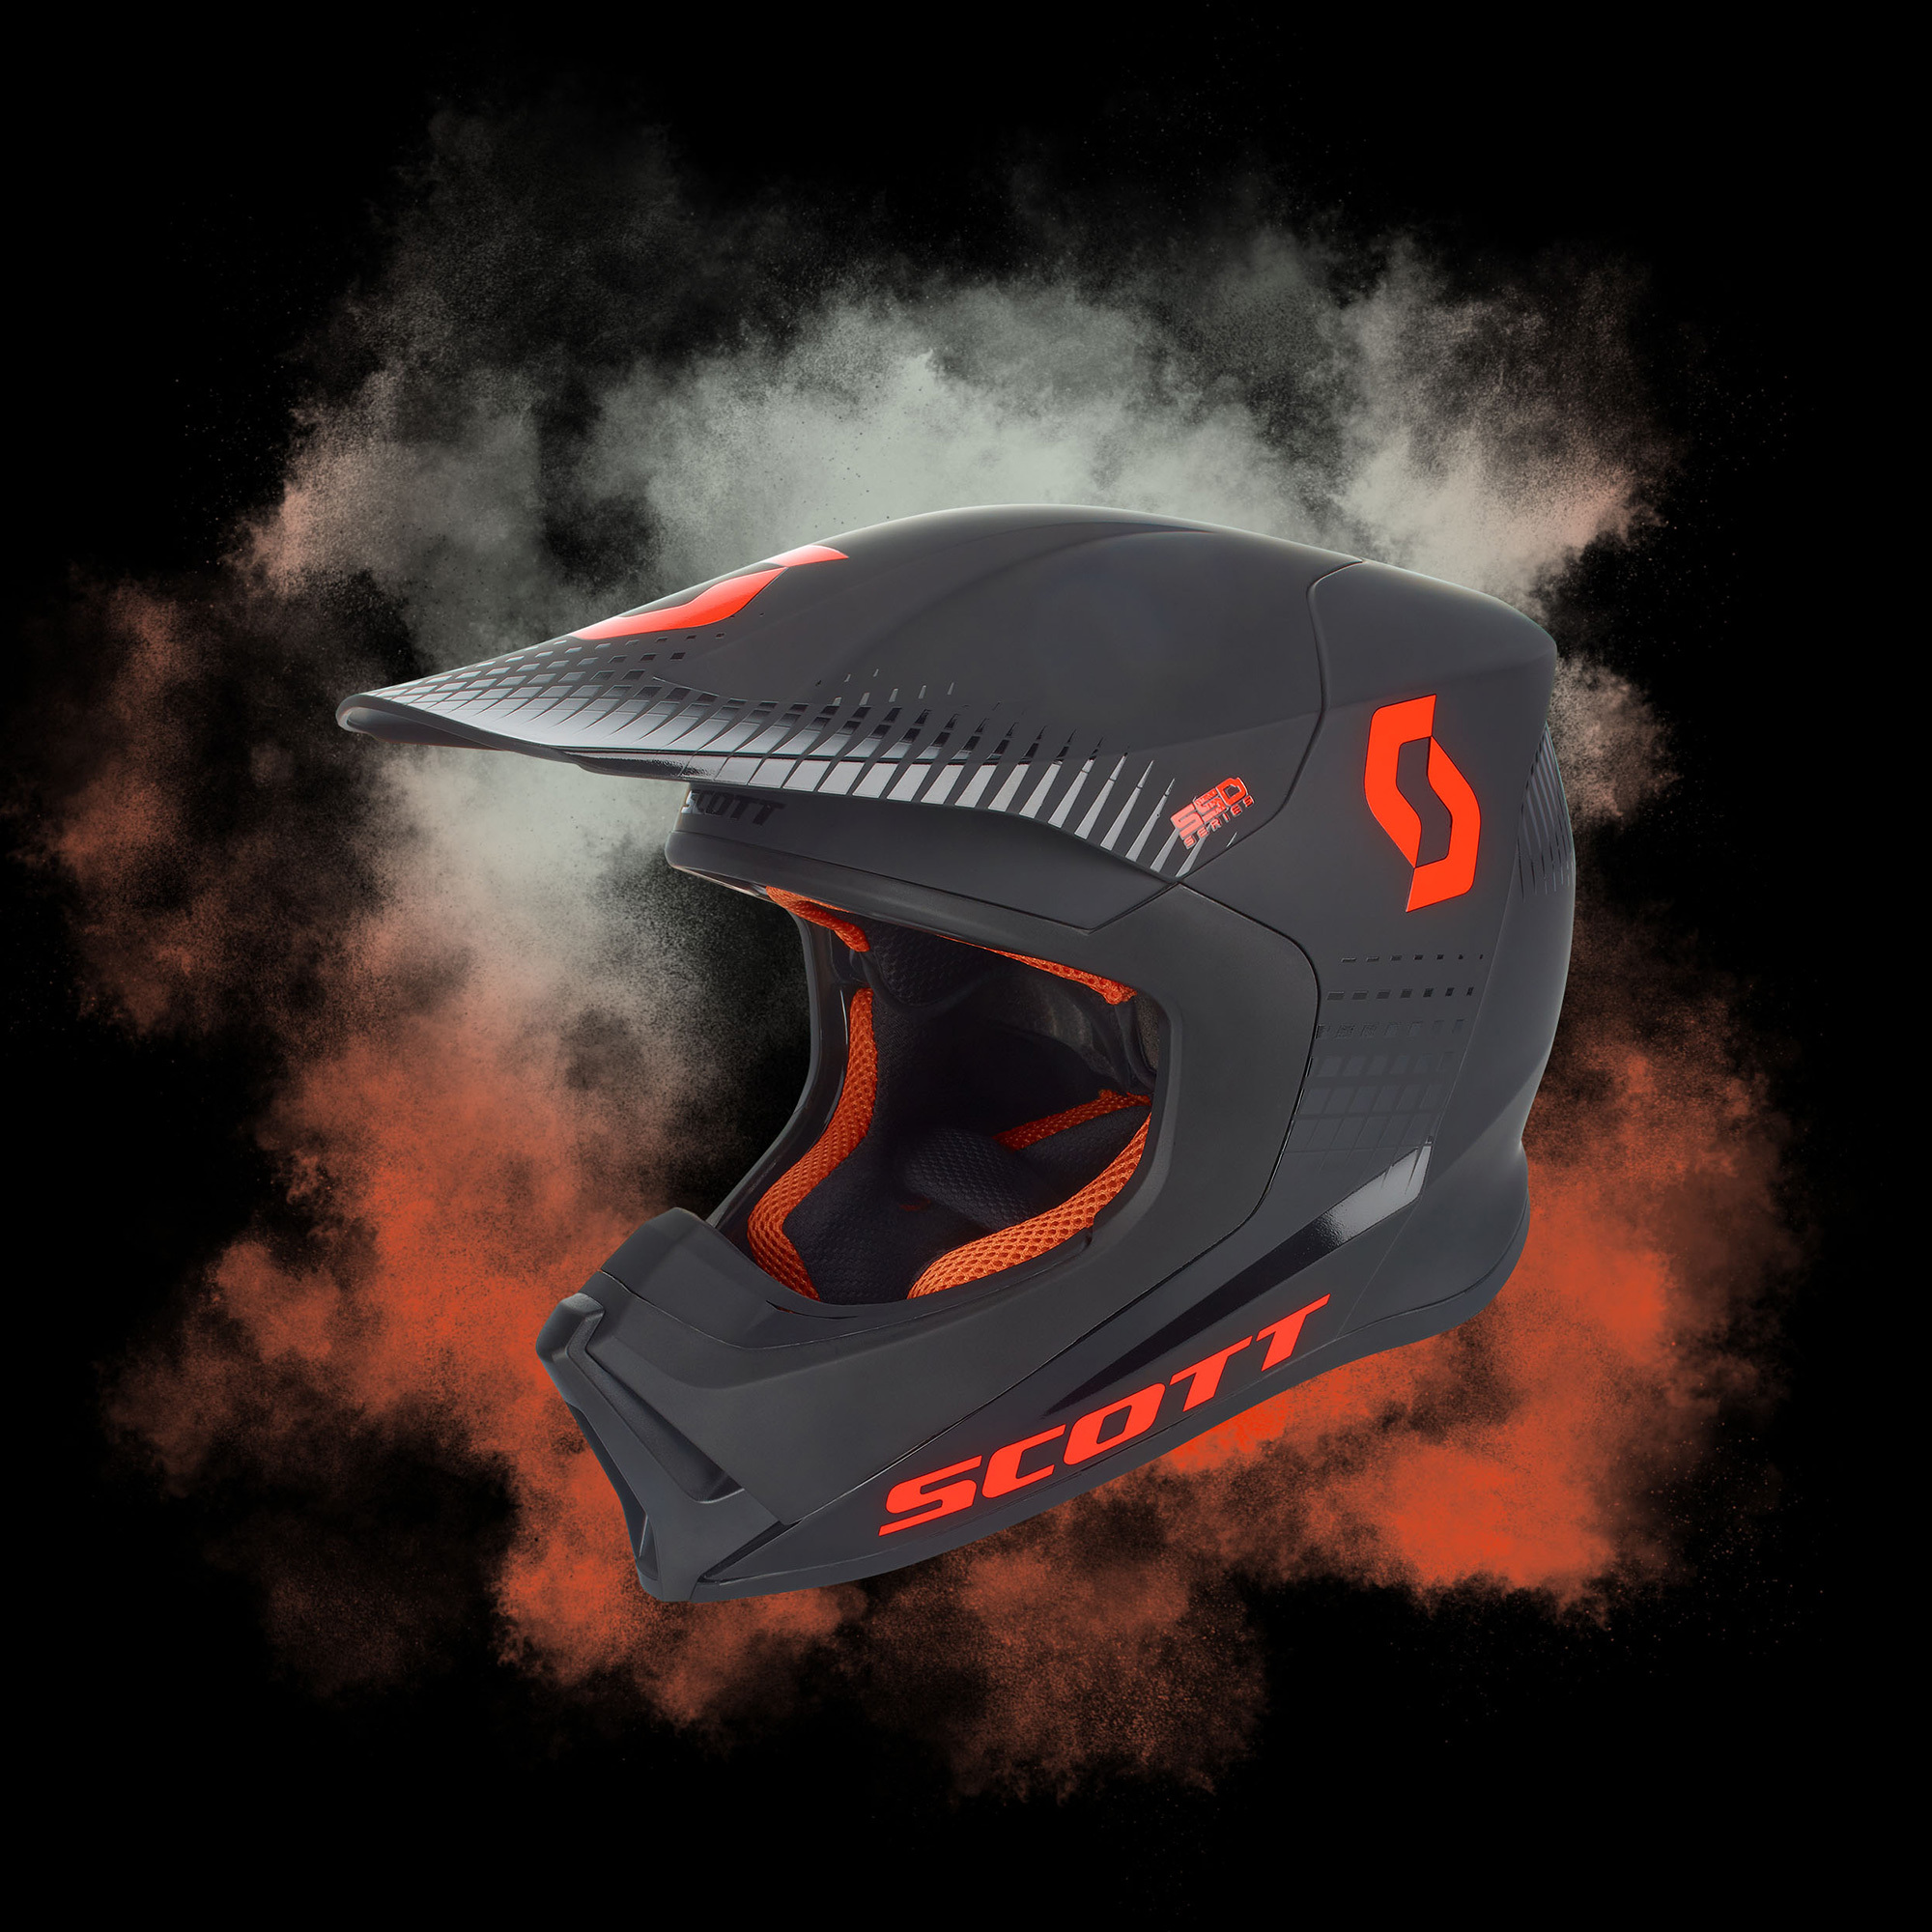 Scott Helmet 550 Hatch Blk/Orange